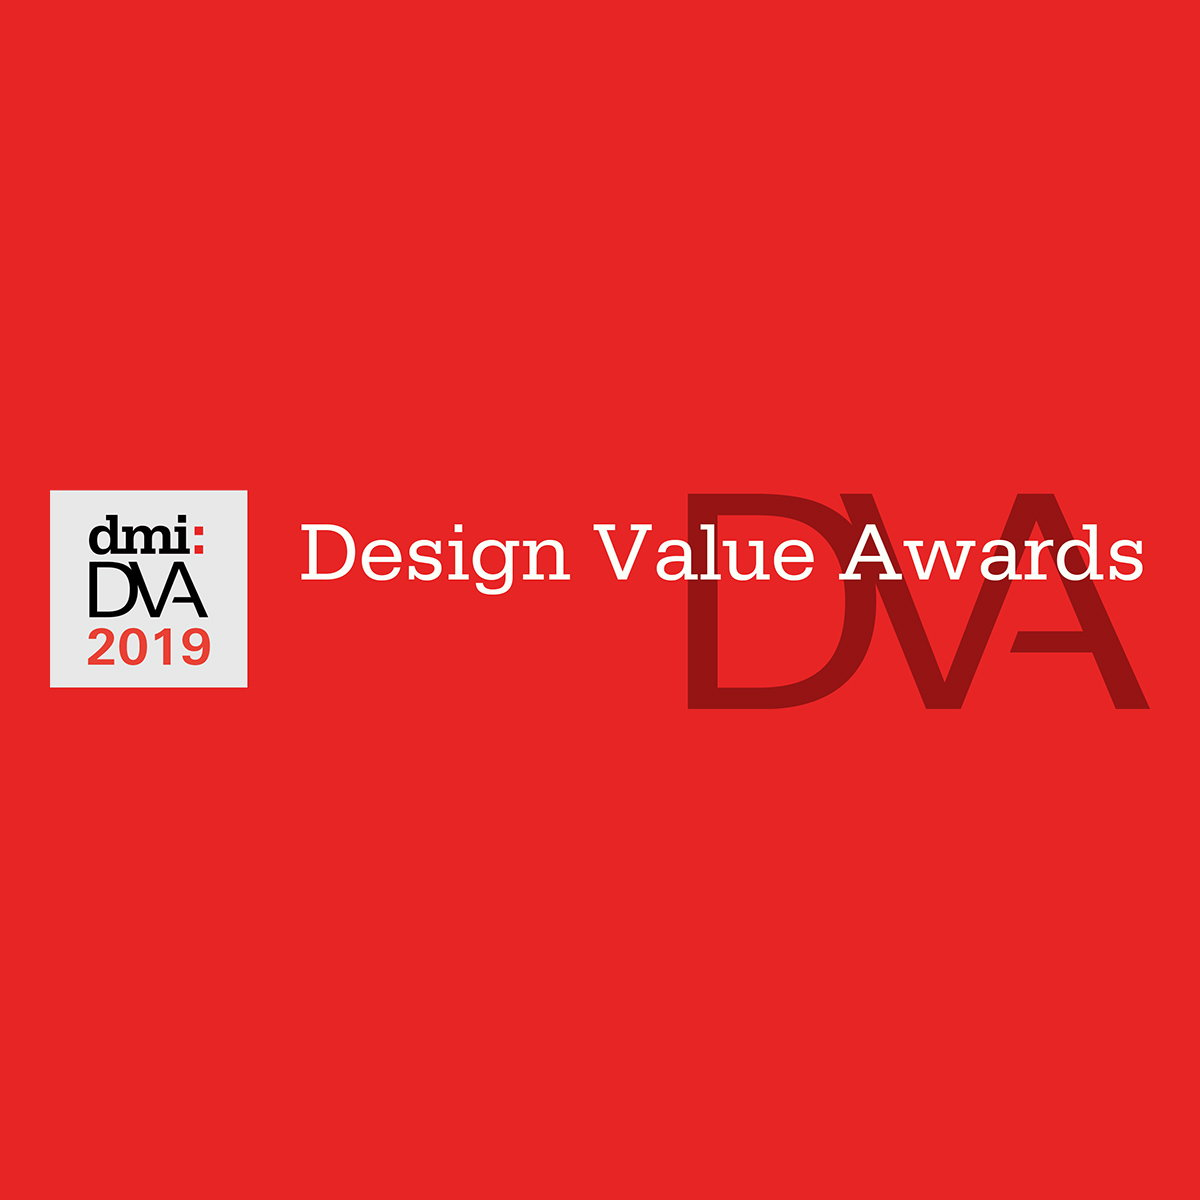 dmi:Design Value Award 2019